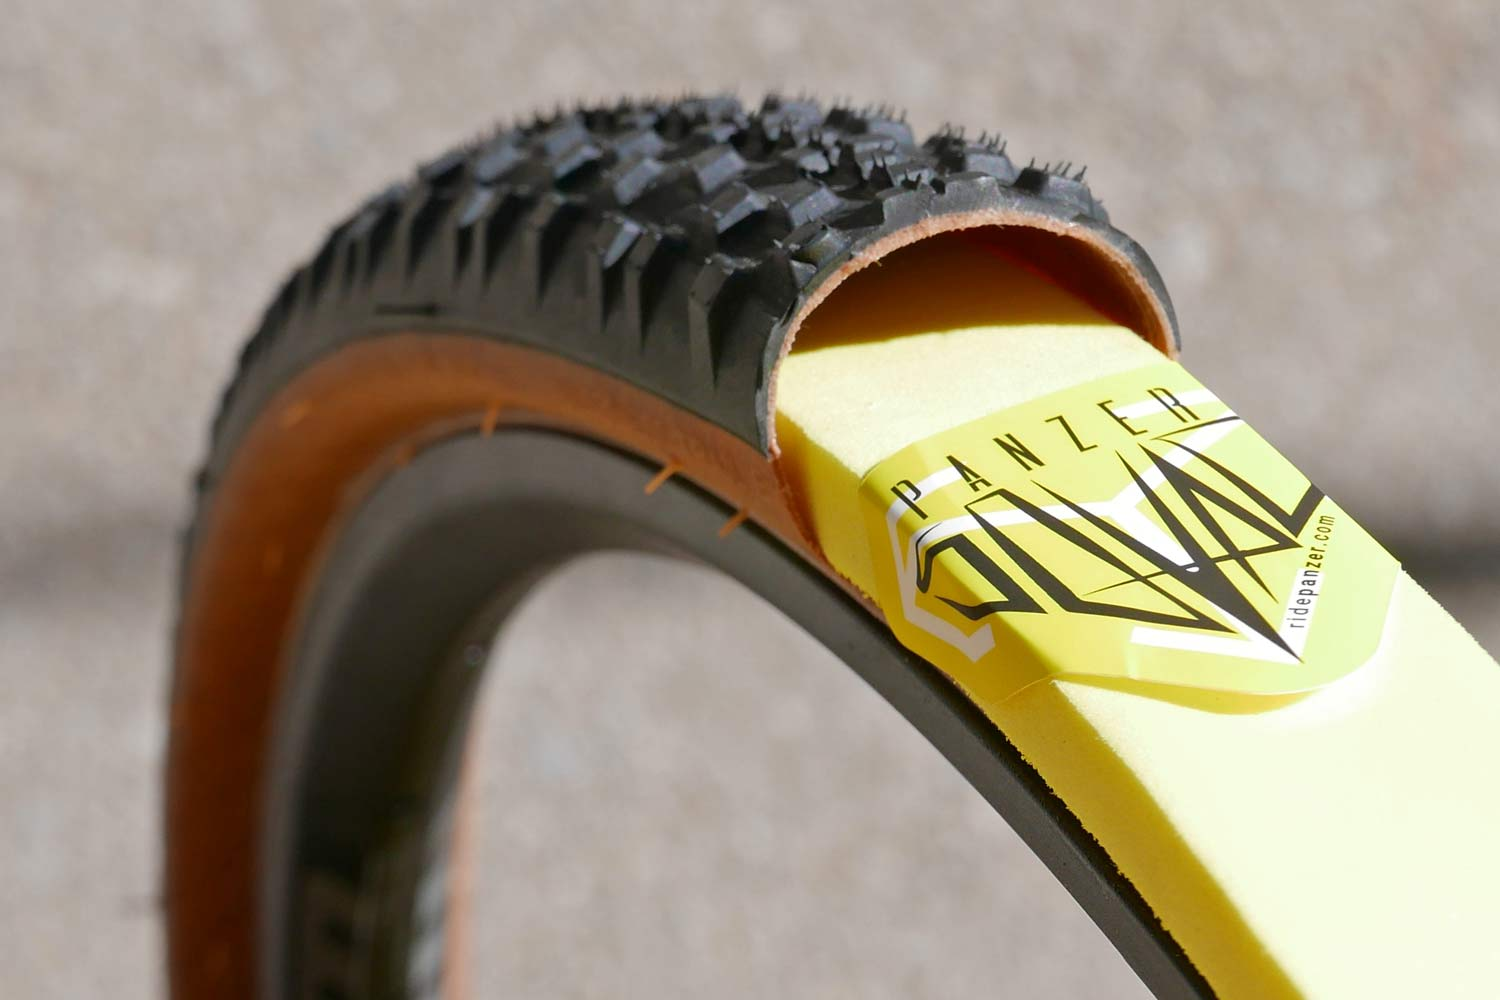 Panzer shapes up anti-flat tire inserts for gravel, adds slick new sealant - Bikerumor